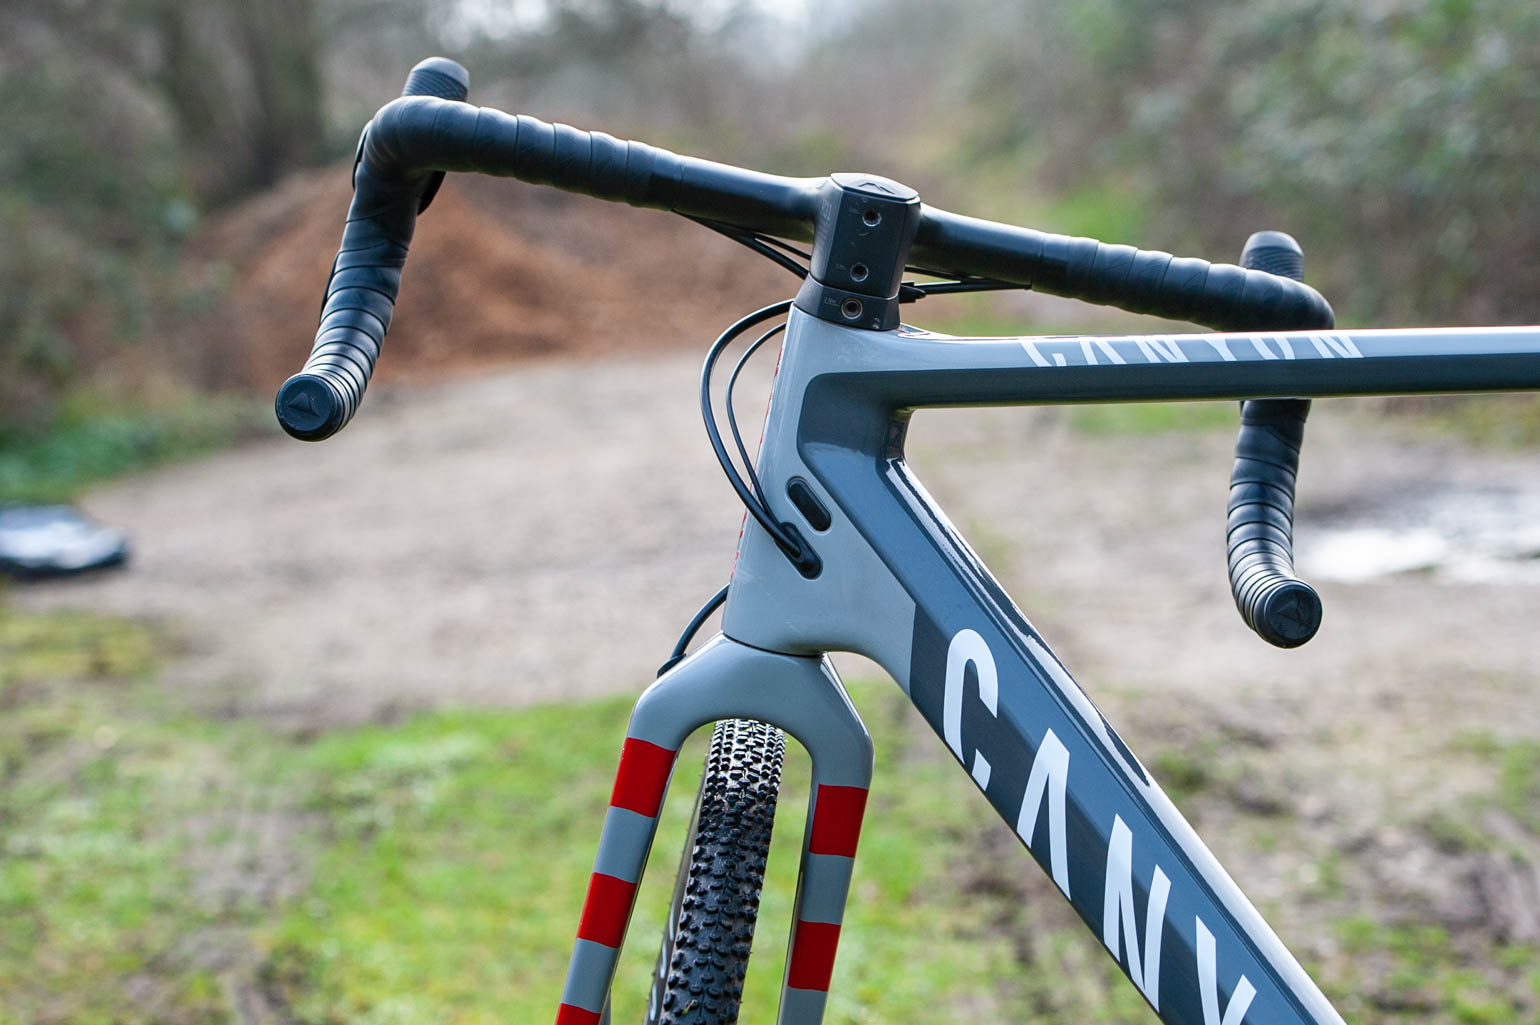 Canyon Inflite CF SLX Team Issue cyclocross